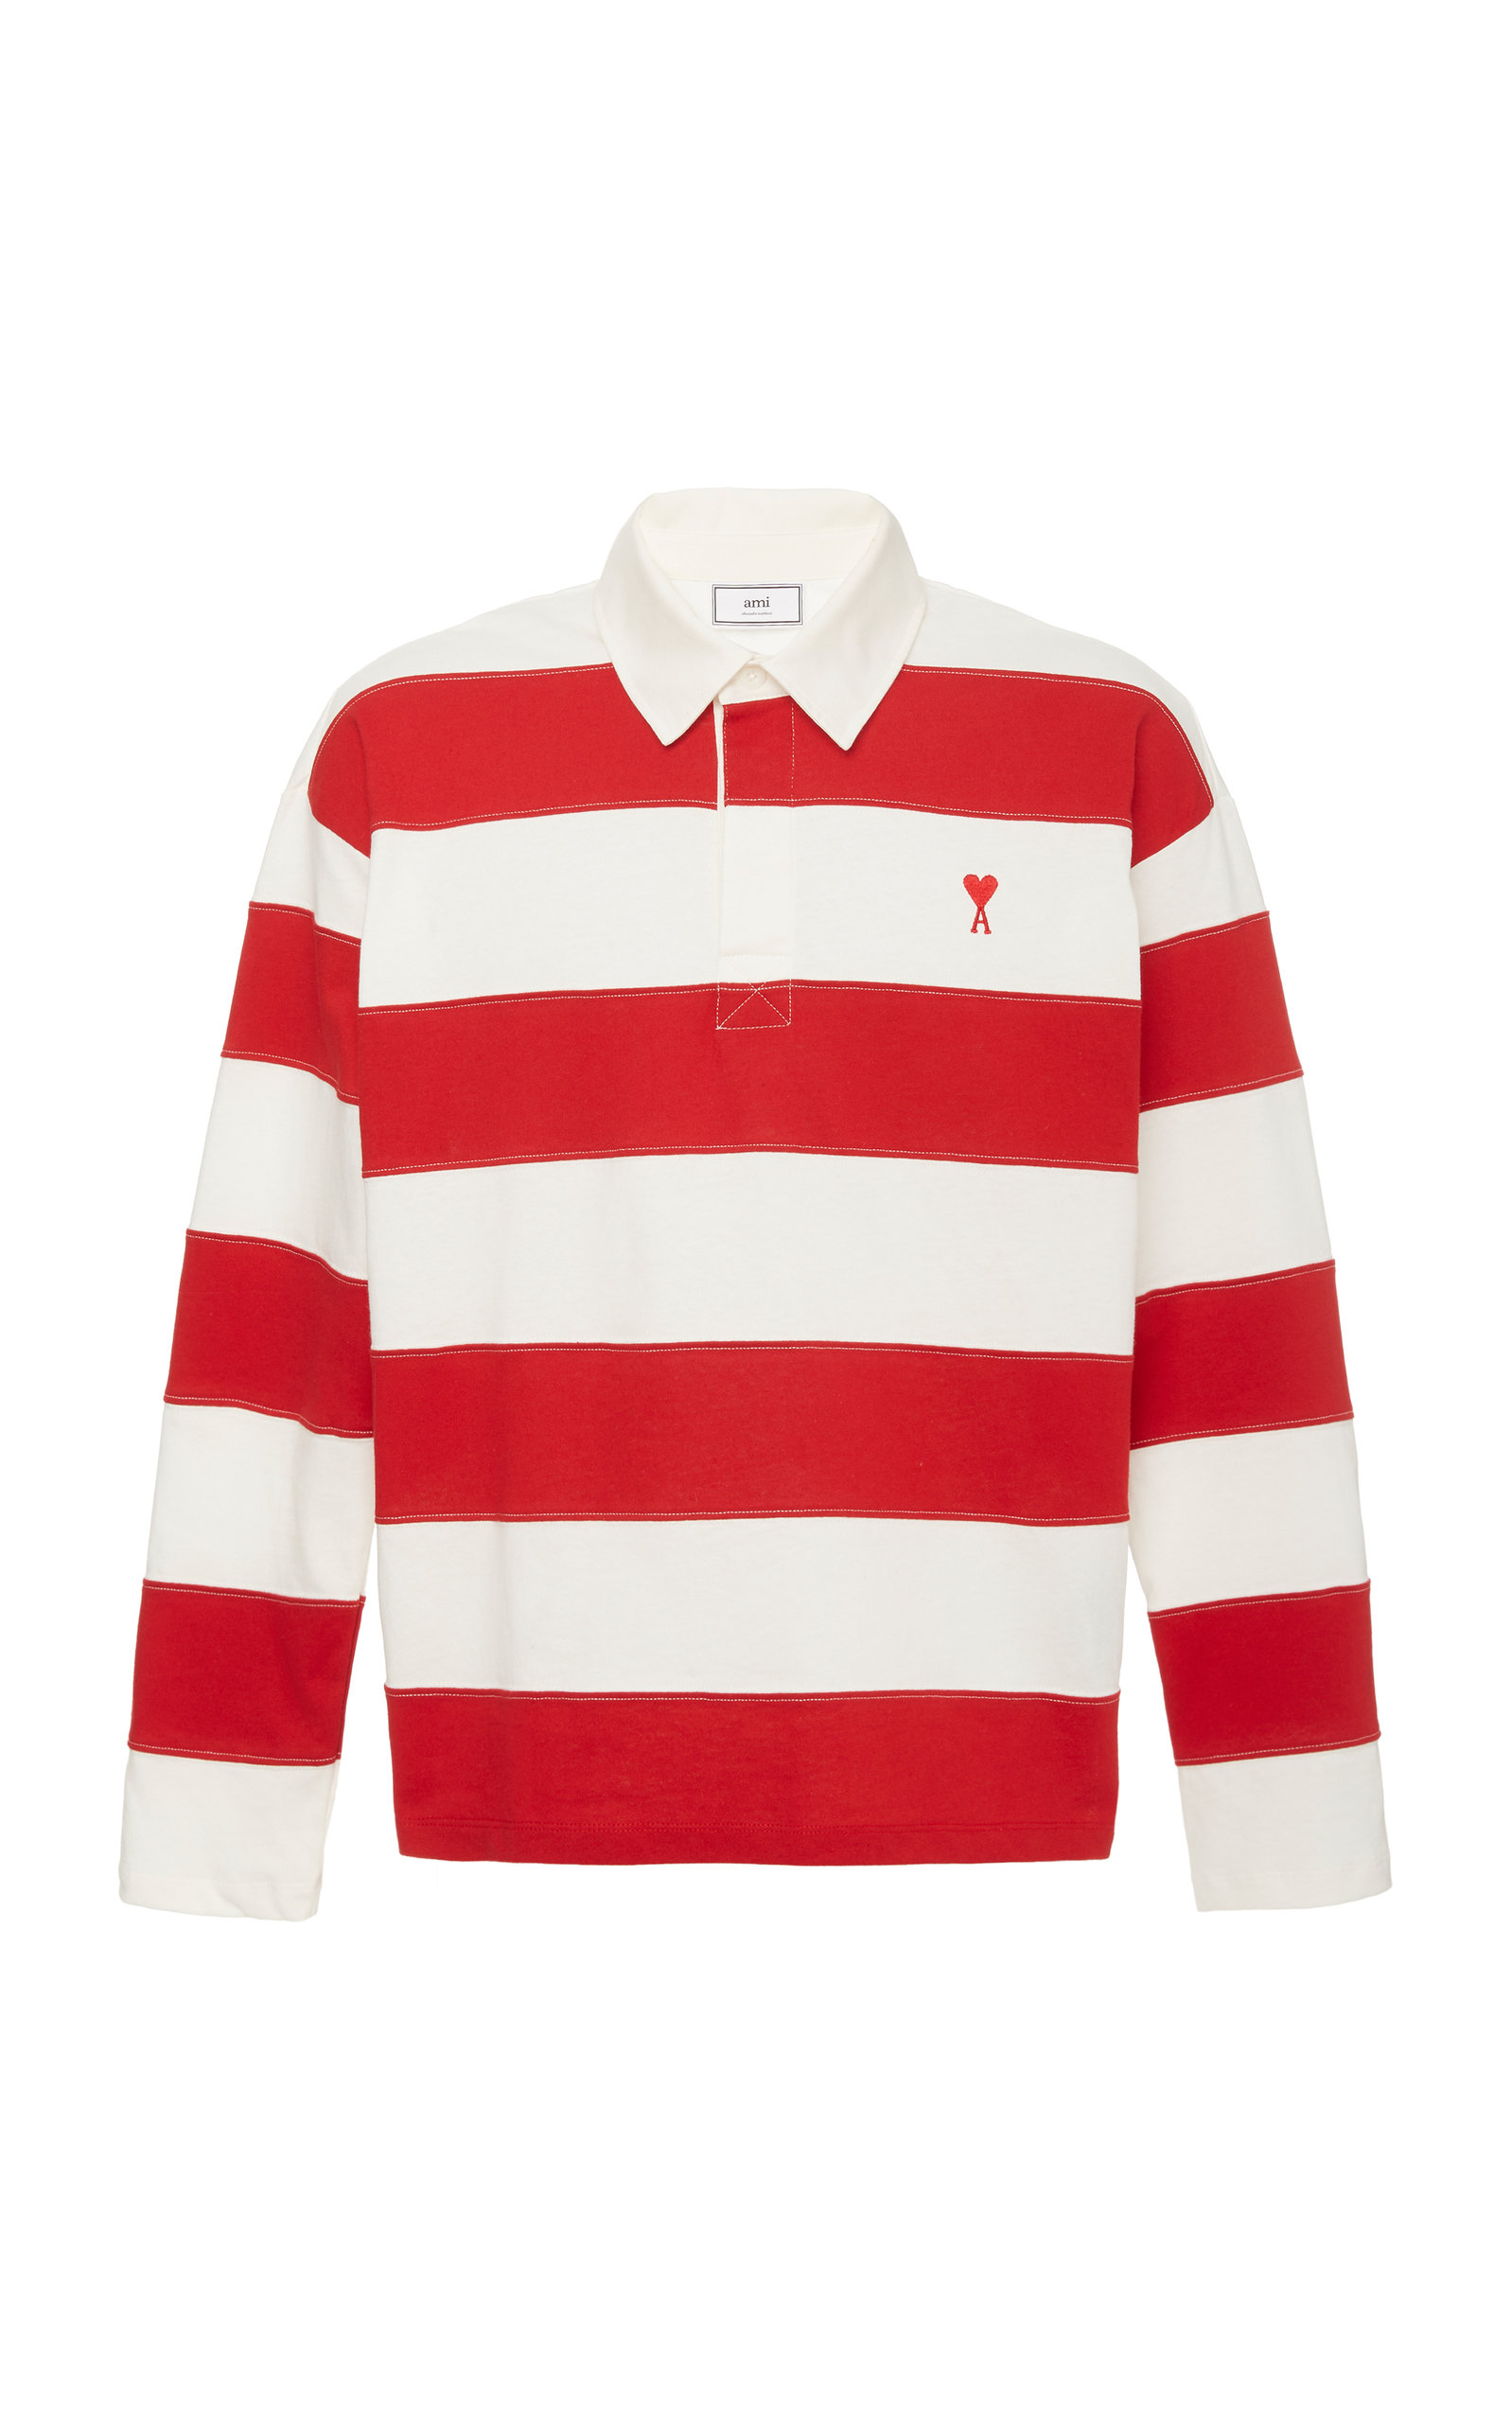 33501a3b1c2 Logo-Embroidered Striped Cotton-Jersey Rugby Shirt by AMI   Moda ...